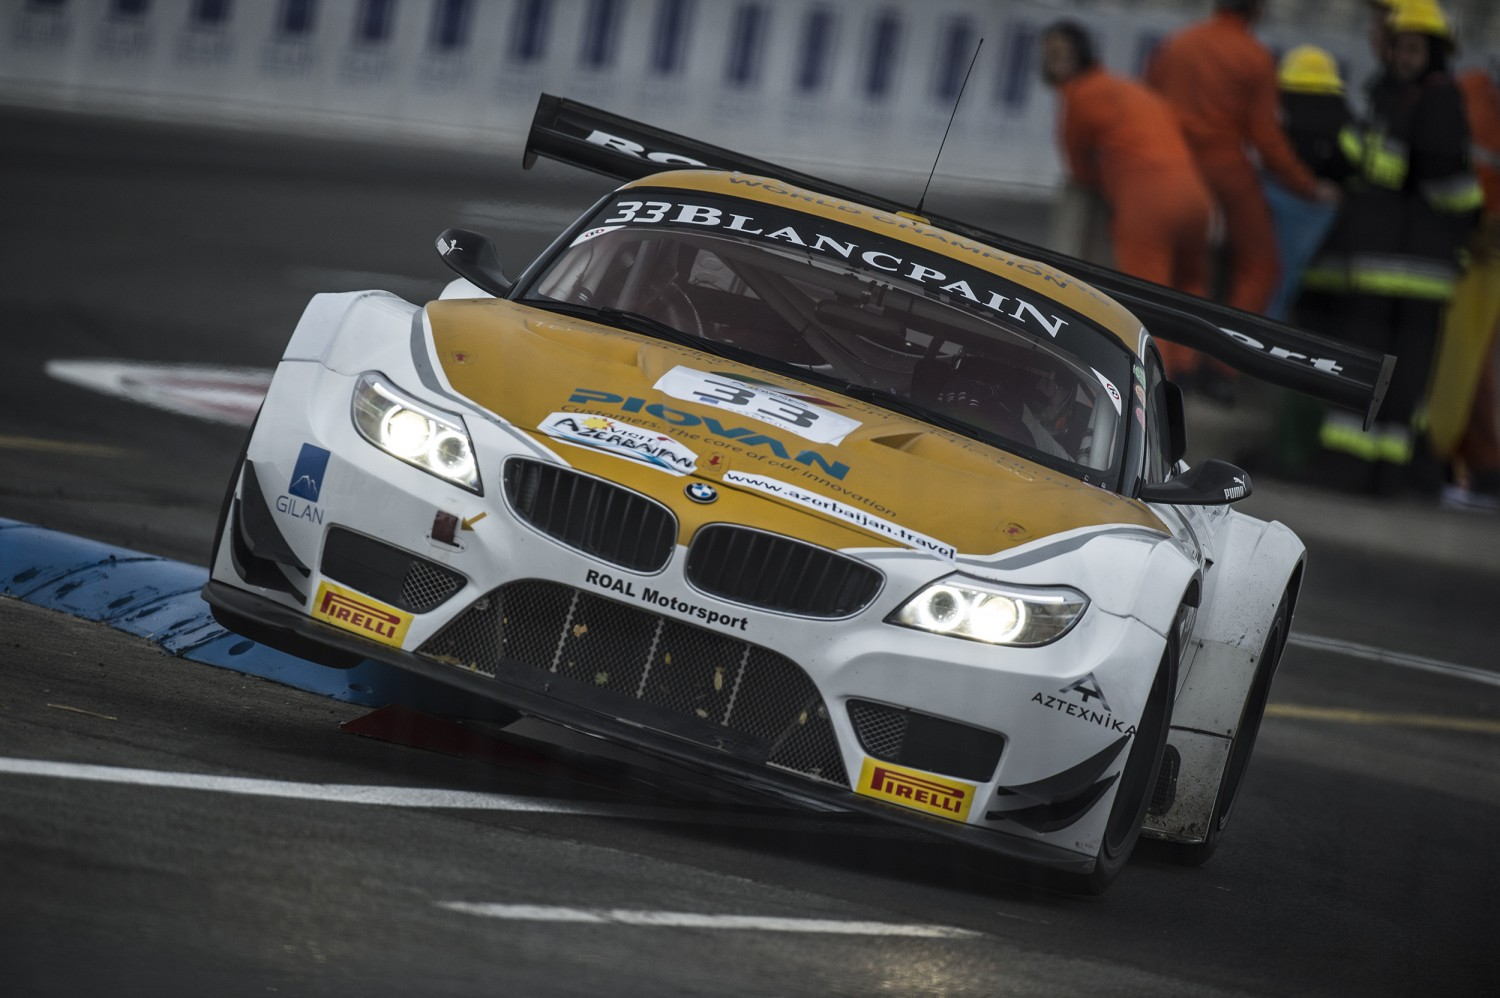 Alex Zanardi tops timesheets in first free practice